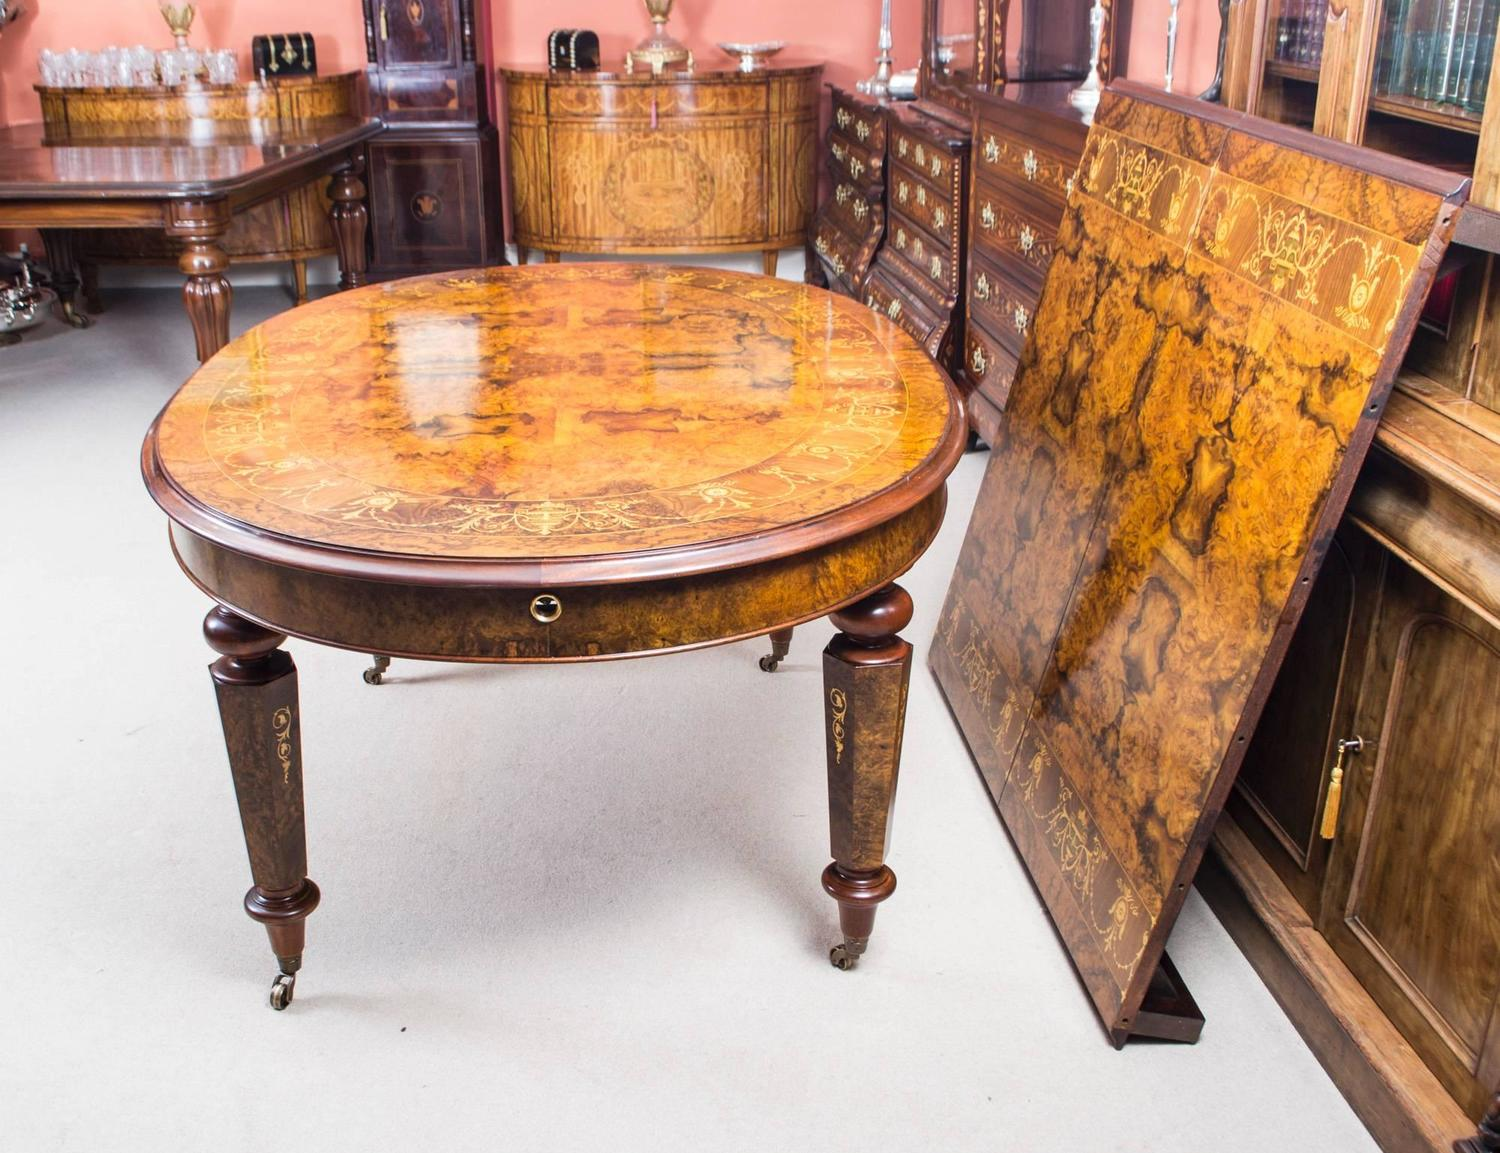 Stunning burr walnut 10ft oval marquetry dining table for for 10 ft dining table sale